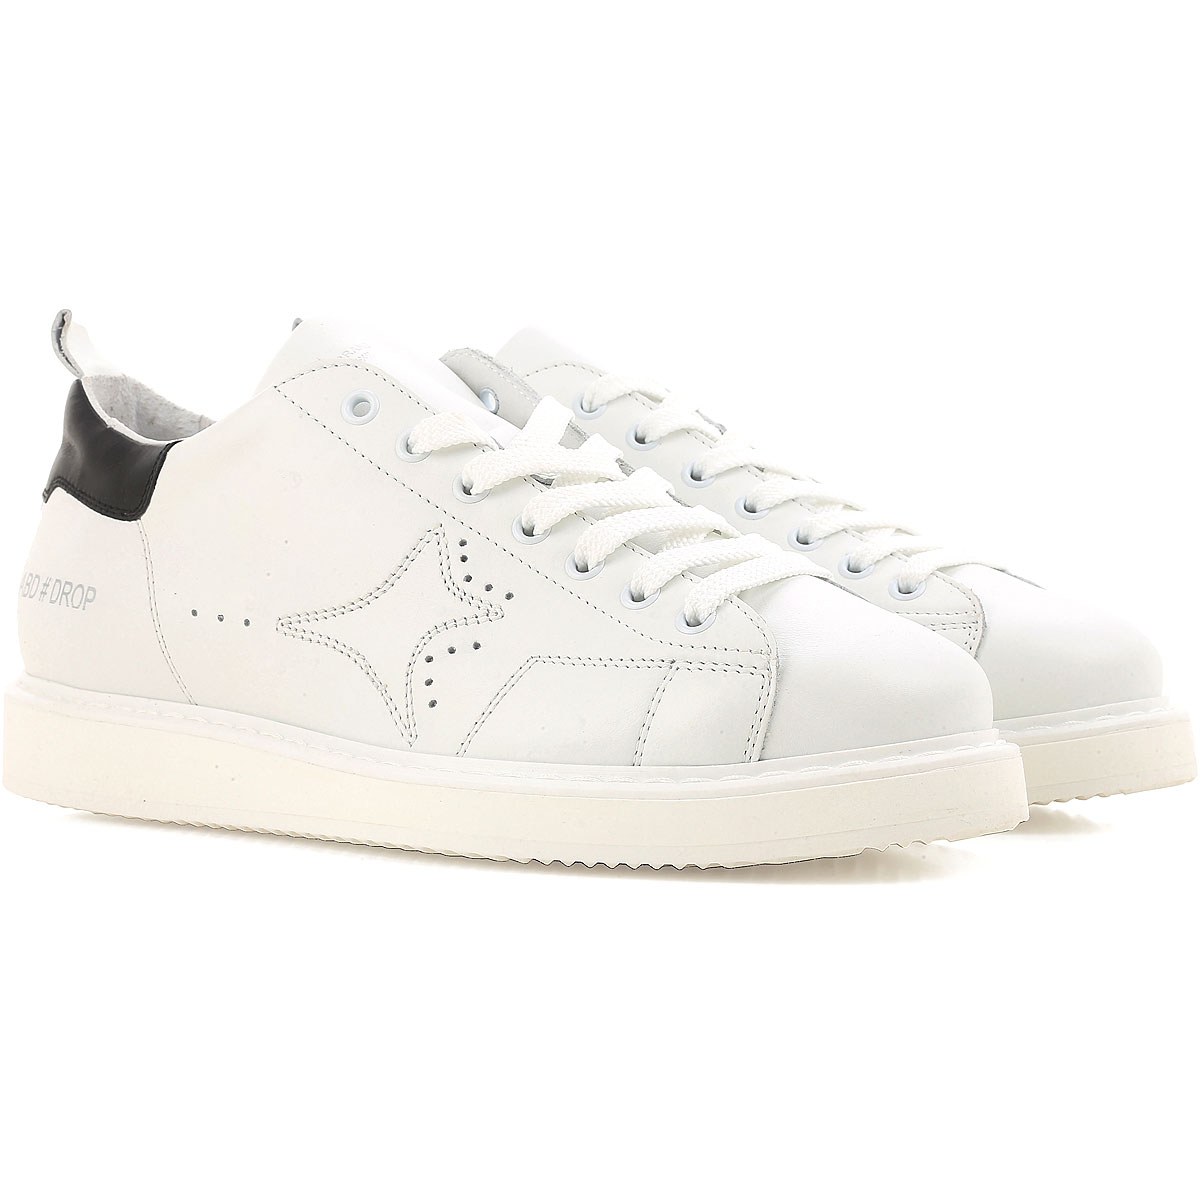 Image of Ama Brand Sneakers for Men On Sale, White, Leather, 2017, EUR 42 - UK 8 - USA 8.5 EUR 44 - UK 9.5 - USA 10